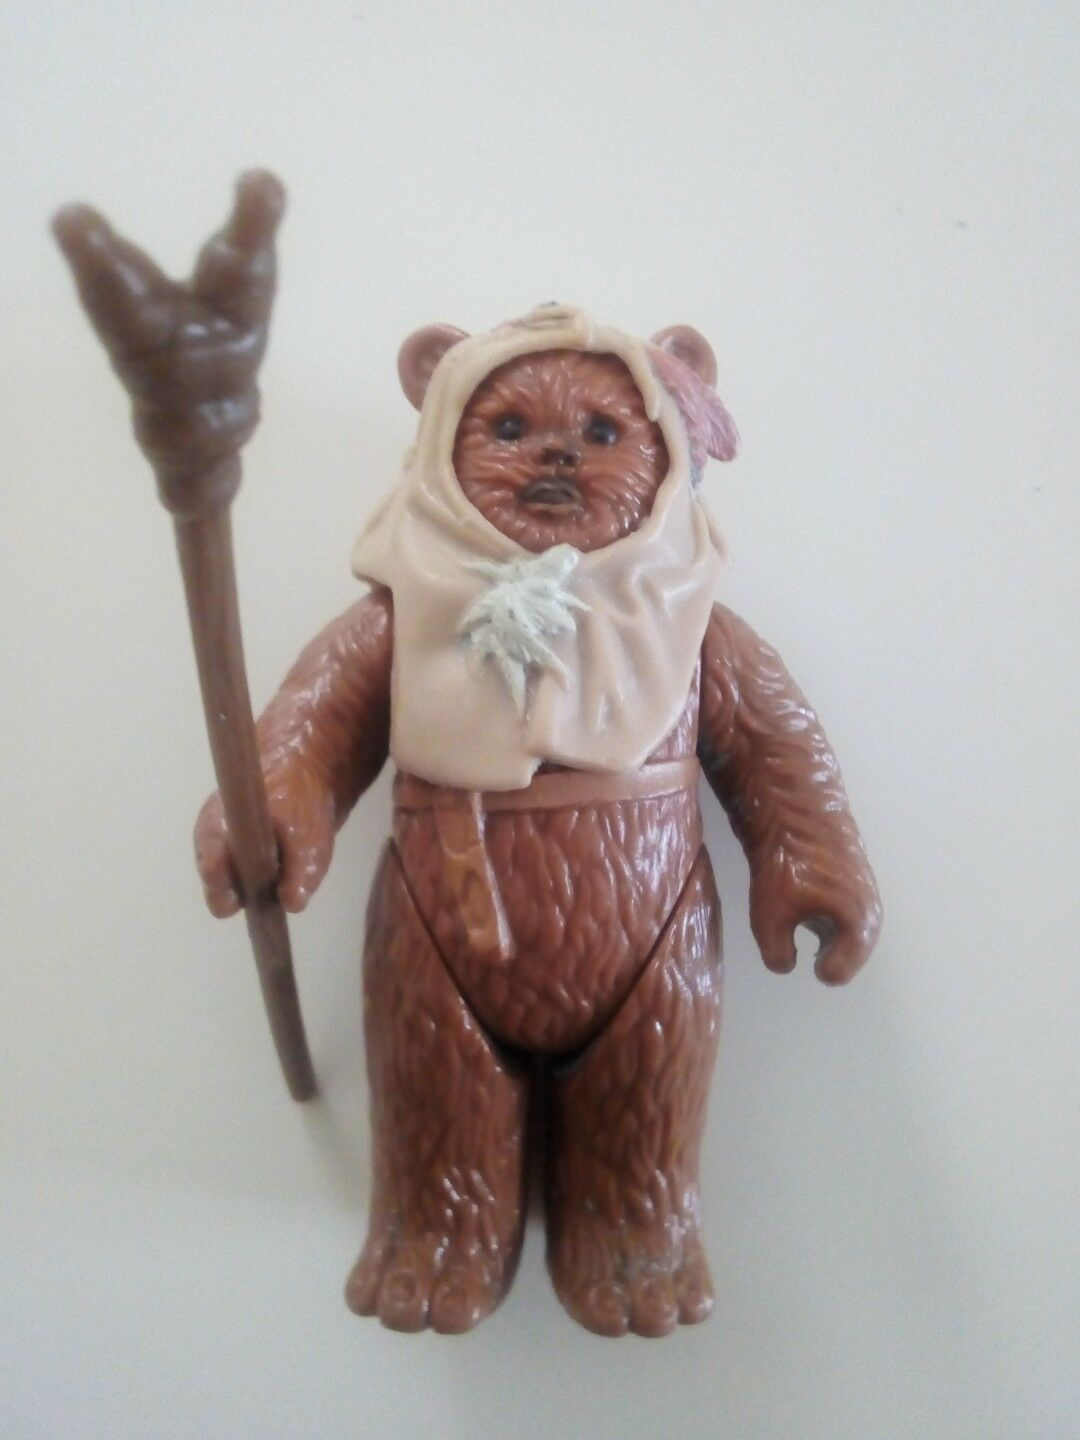 Ewok Endor Paploo Kenner Vintage Star Wars Original 1983 - 1985